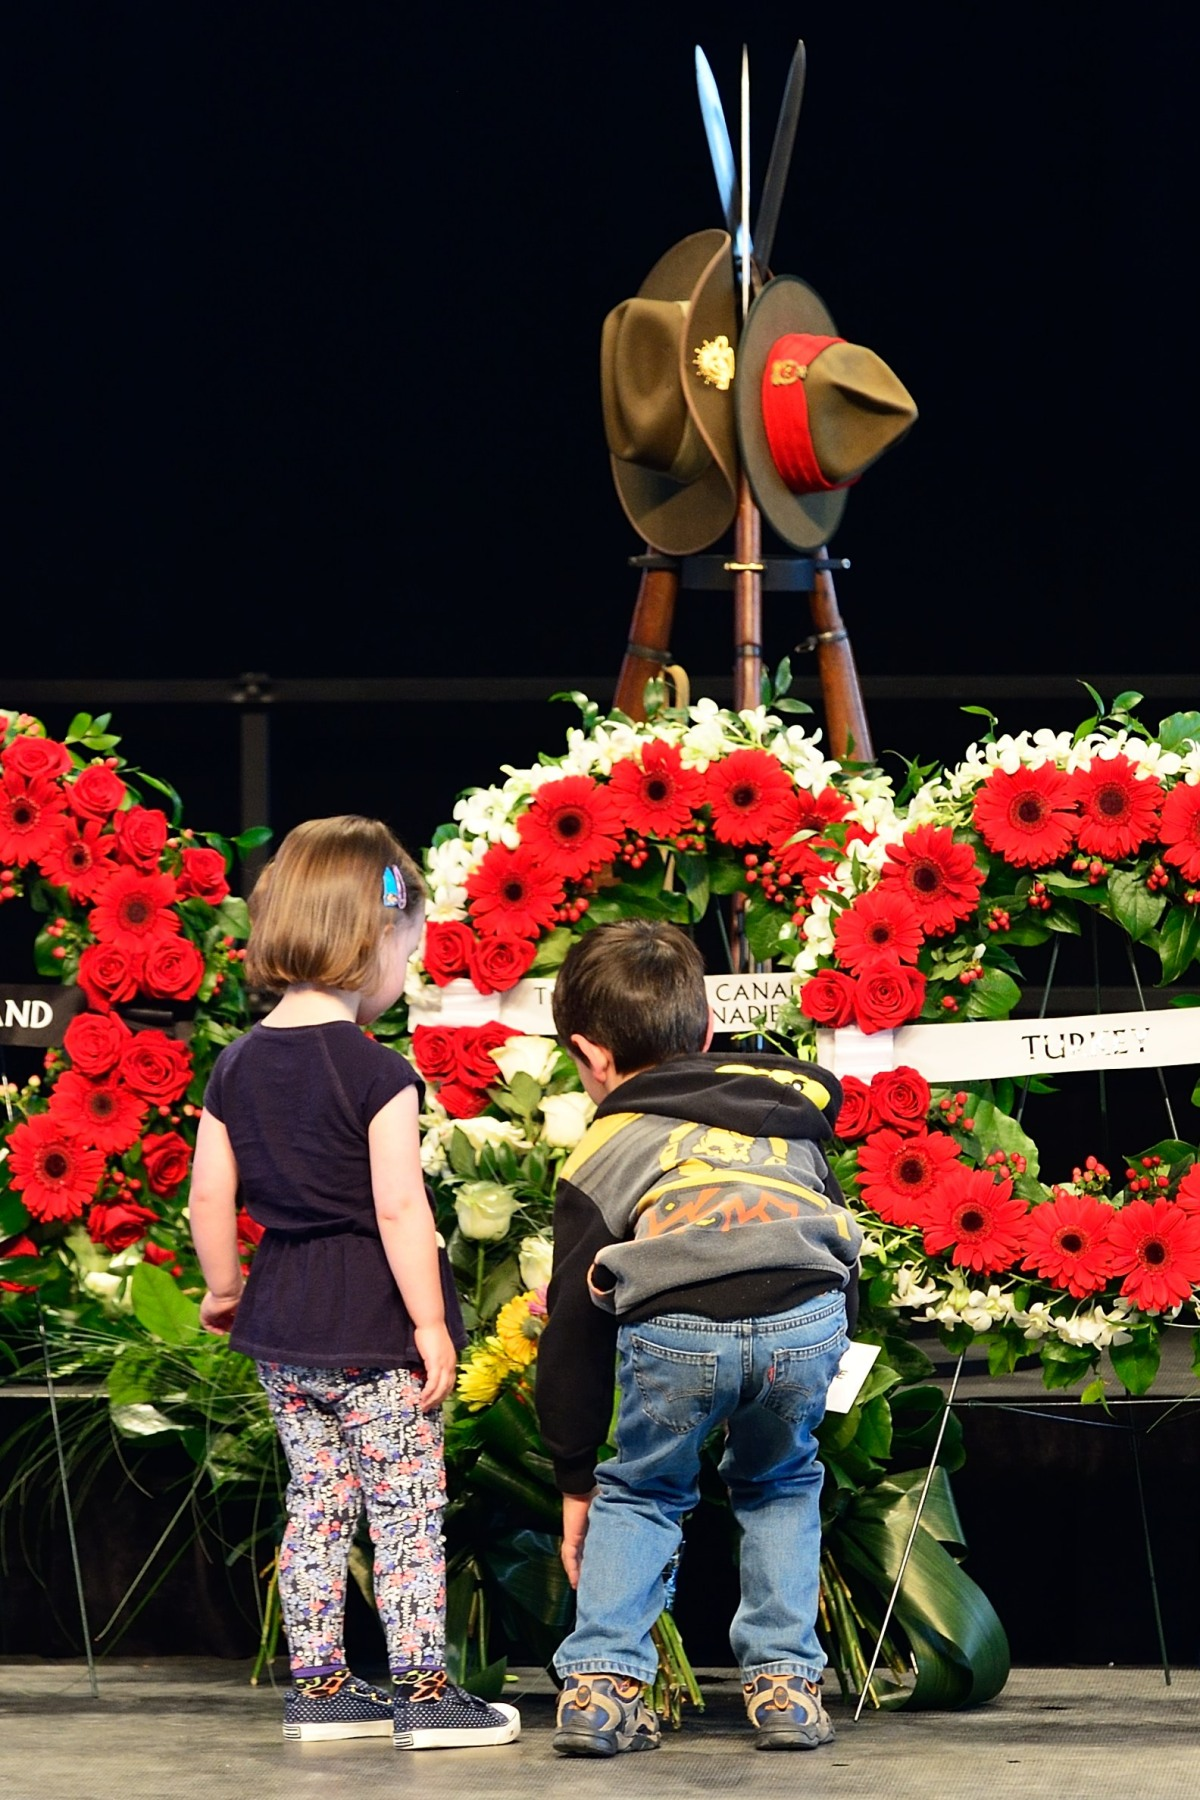 Children also laid a wreath in tribute to the Australian and New Zealand soldiers who paid the ultimate sacrifice.